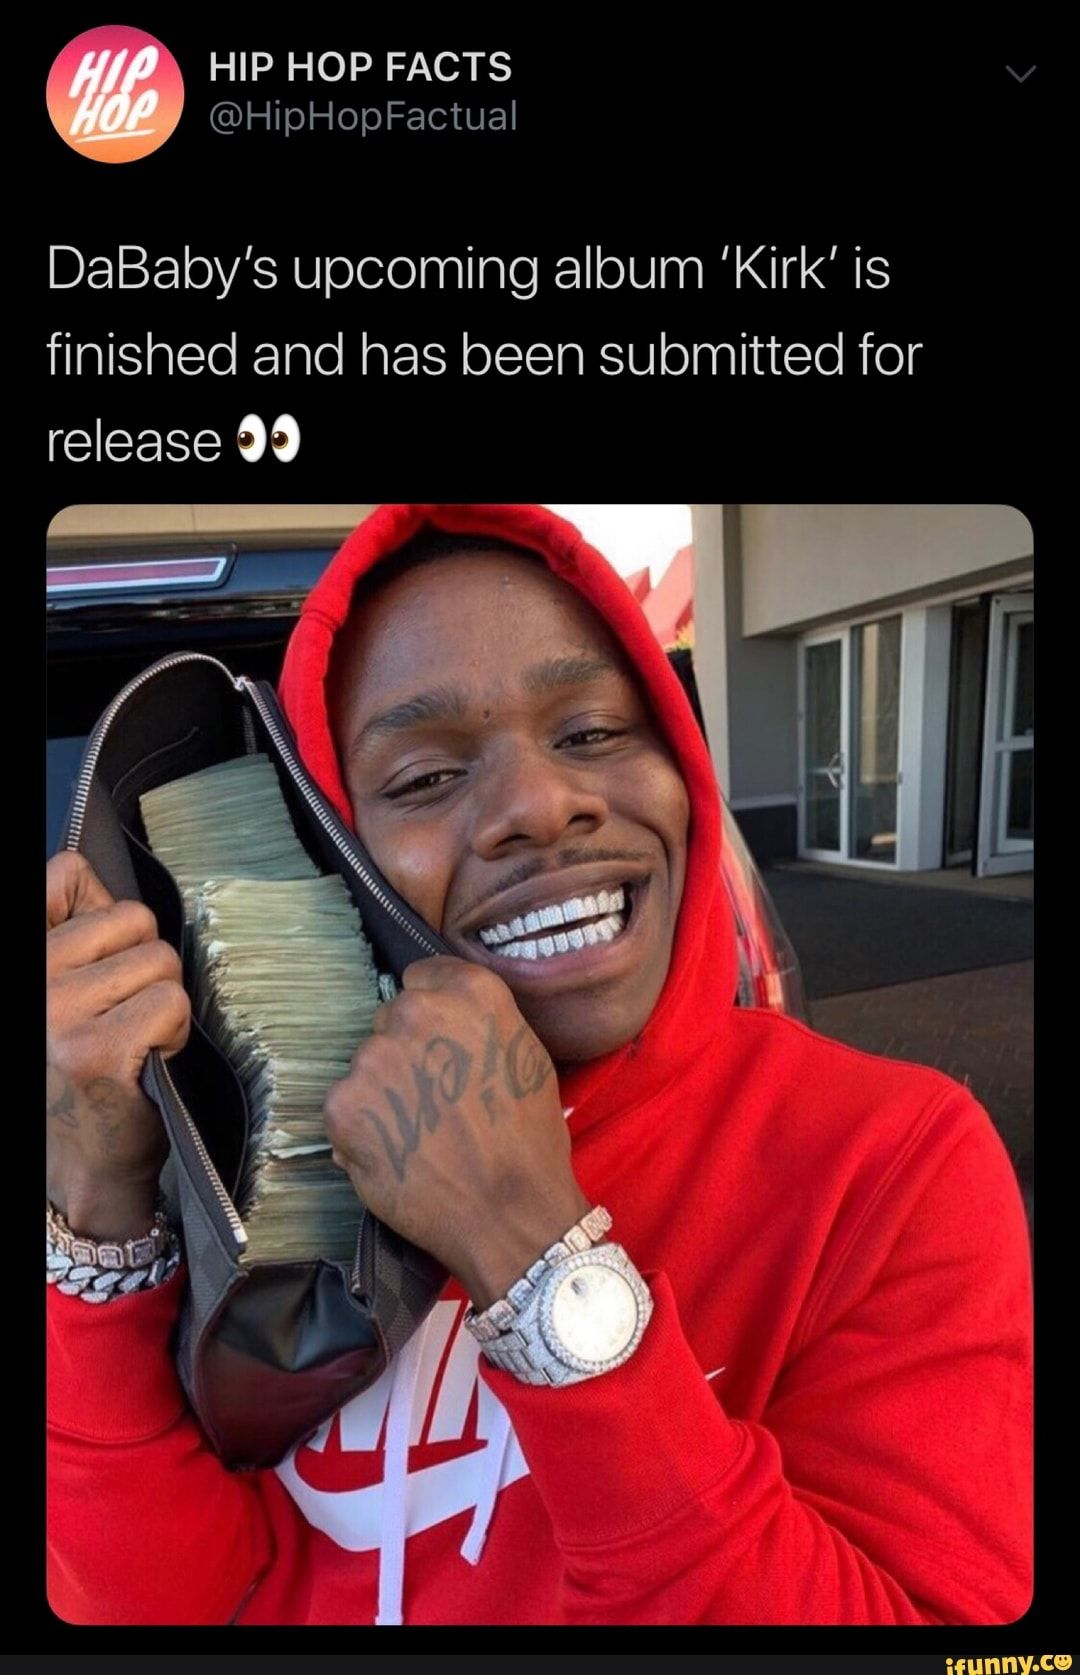 DaBaby's album 'Kirk' is finished and has been